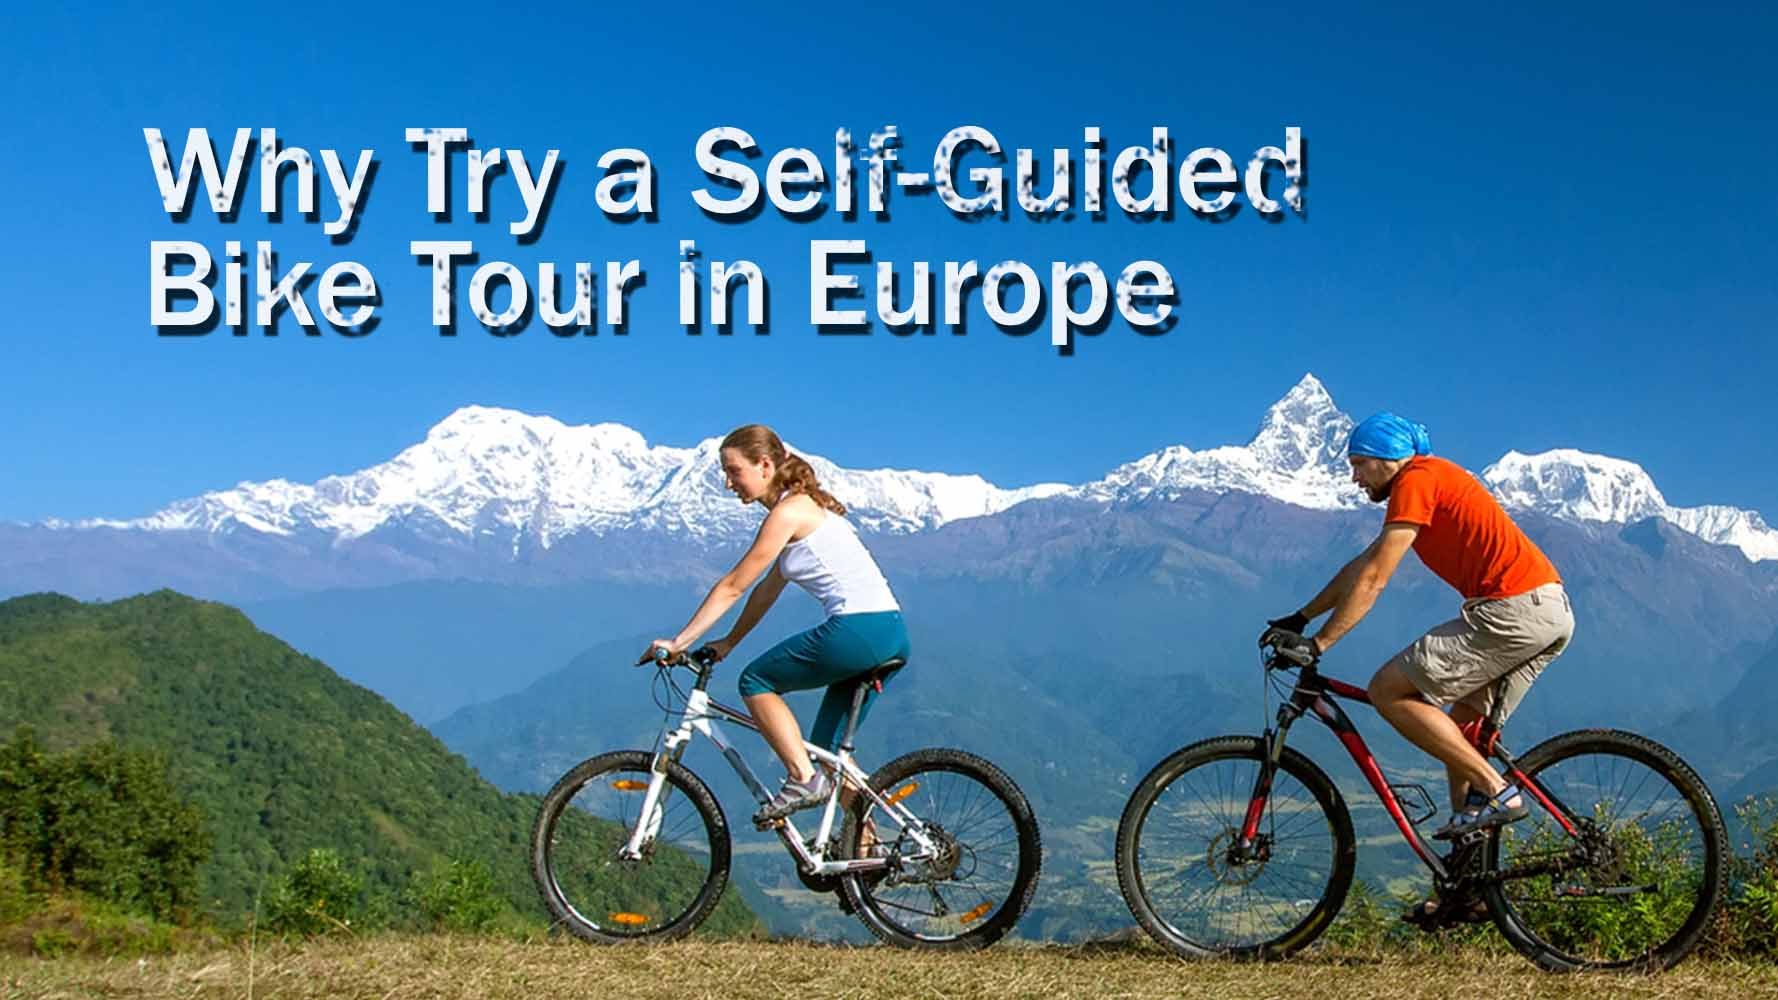 Self-Guided Bike Tour In Europe